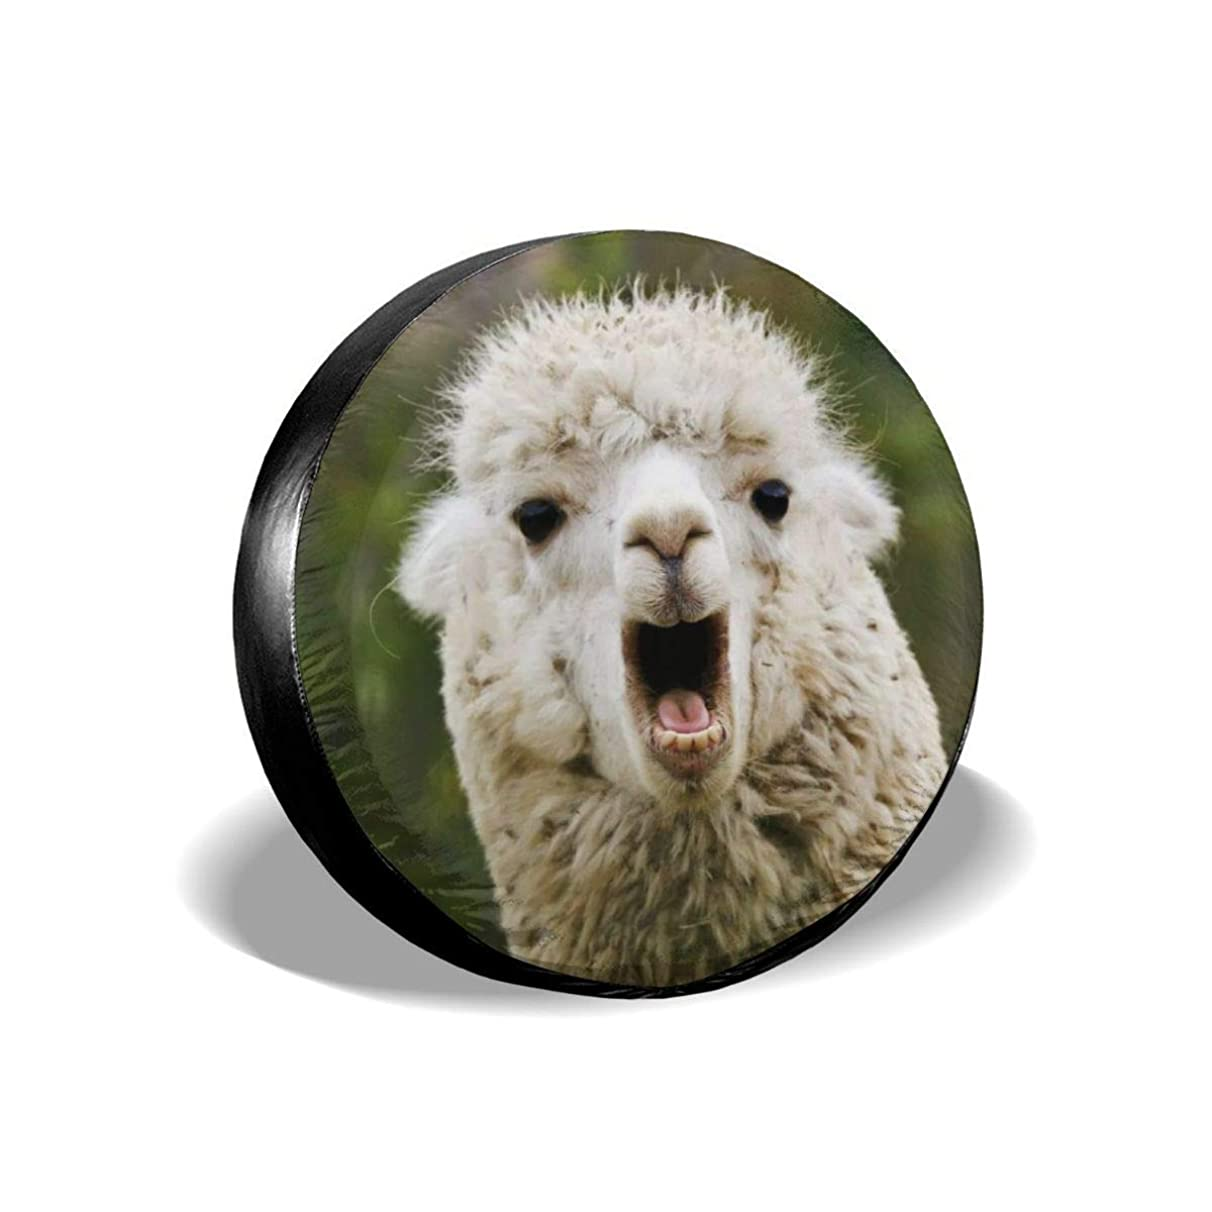 shower curtain liner Llama Tire Cover Polyester Universal Spare Wheel Tire Cover Wheel Covers Jeep Trailer RV SUV Truck Camper Travel Trailer Accessories(14,15,16,17 Inch)